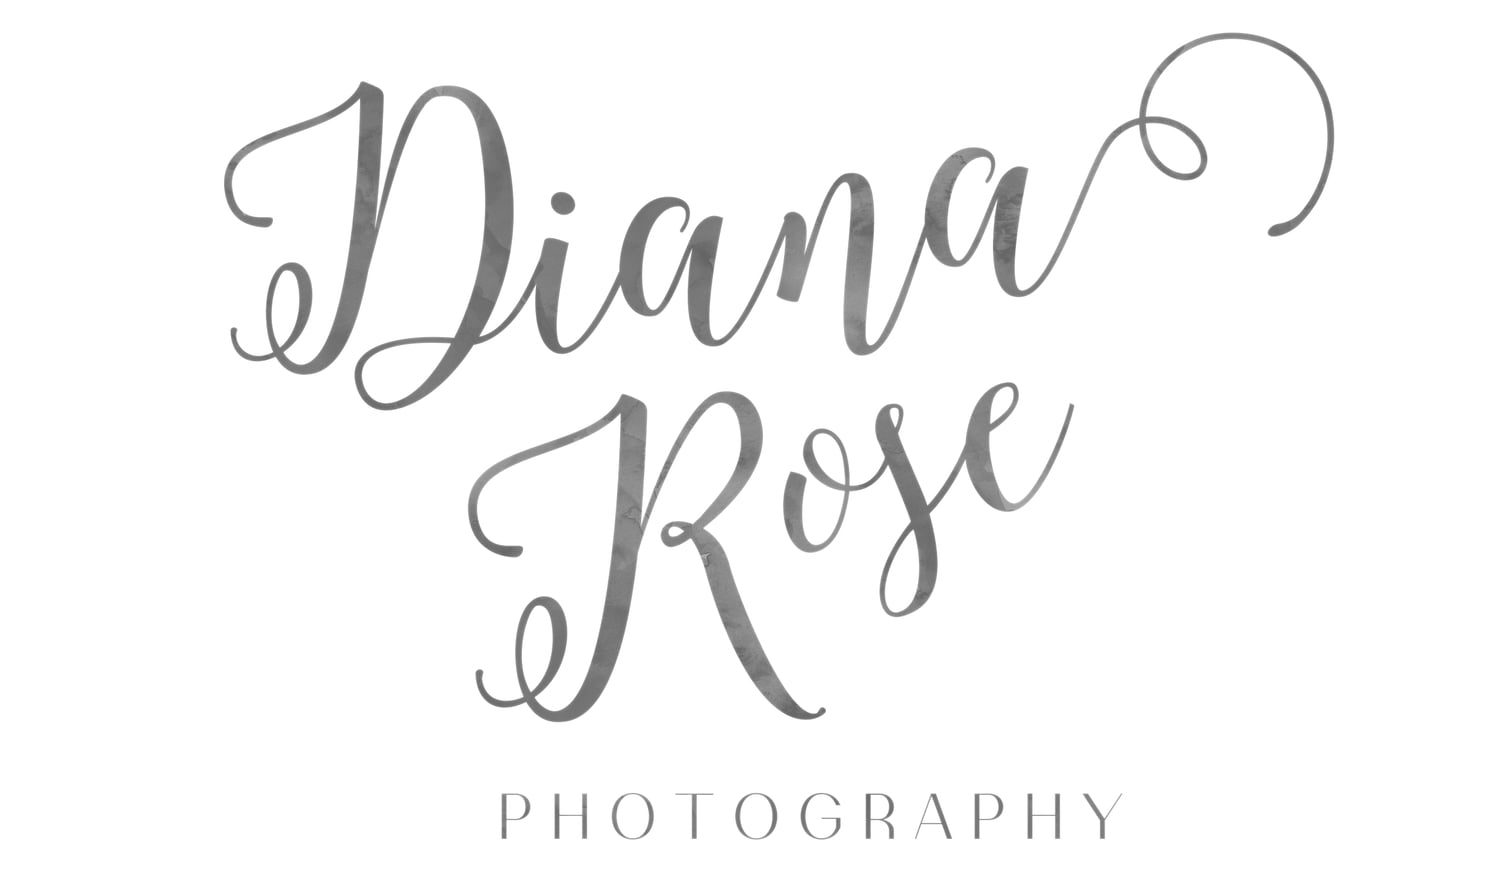 Southeastern North Carolina Photographer | Diana Rose Photography